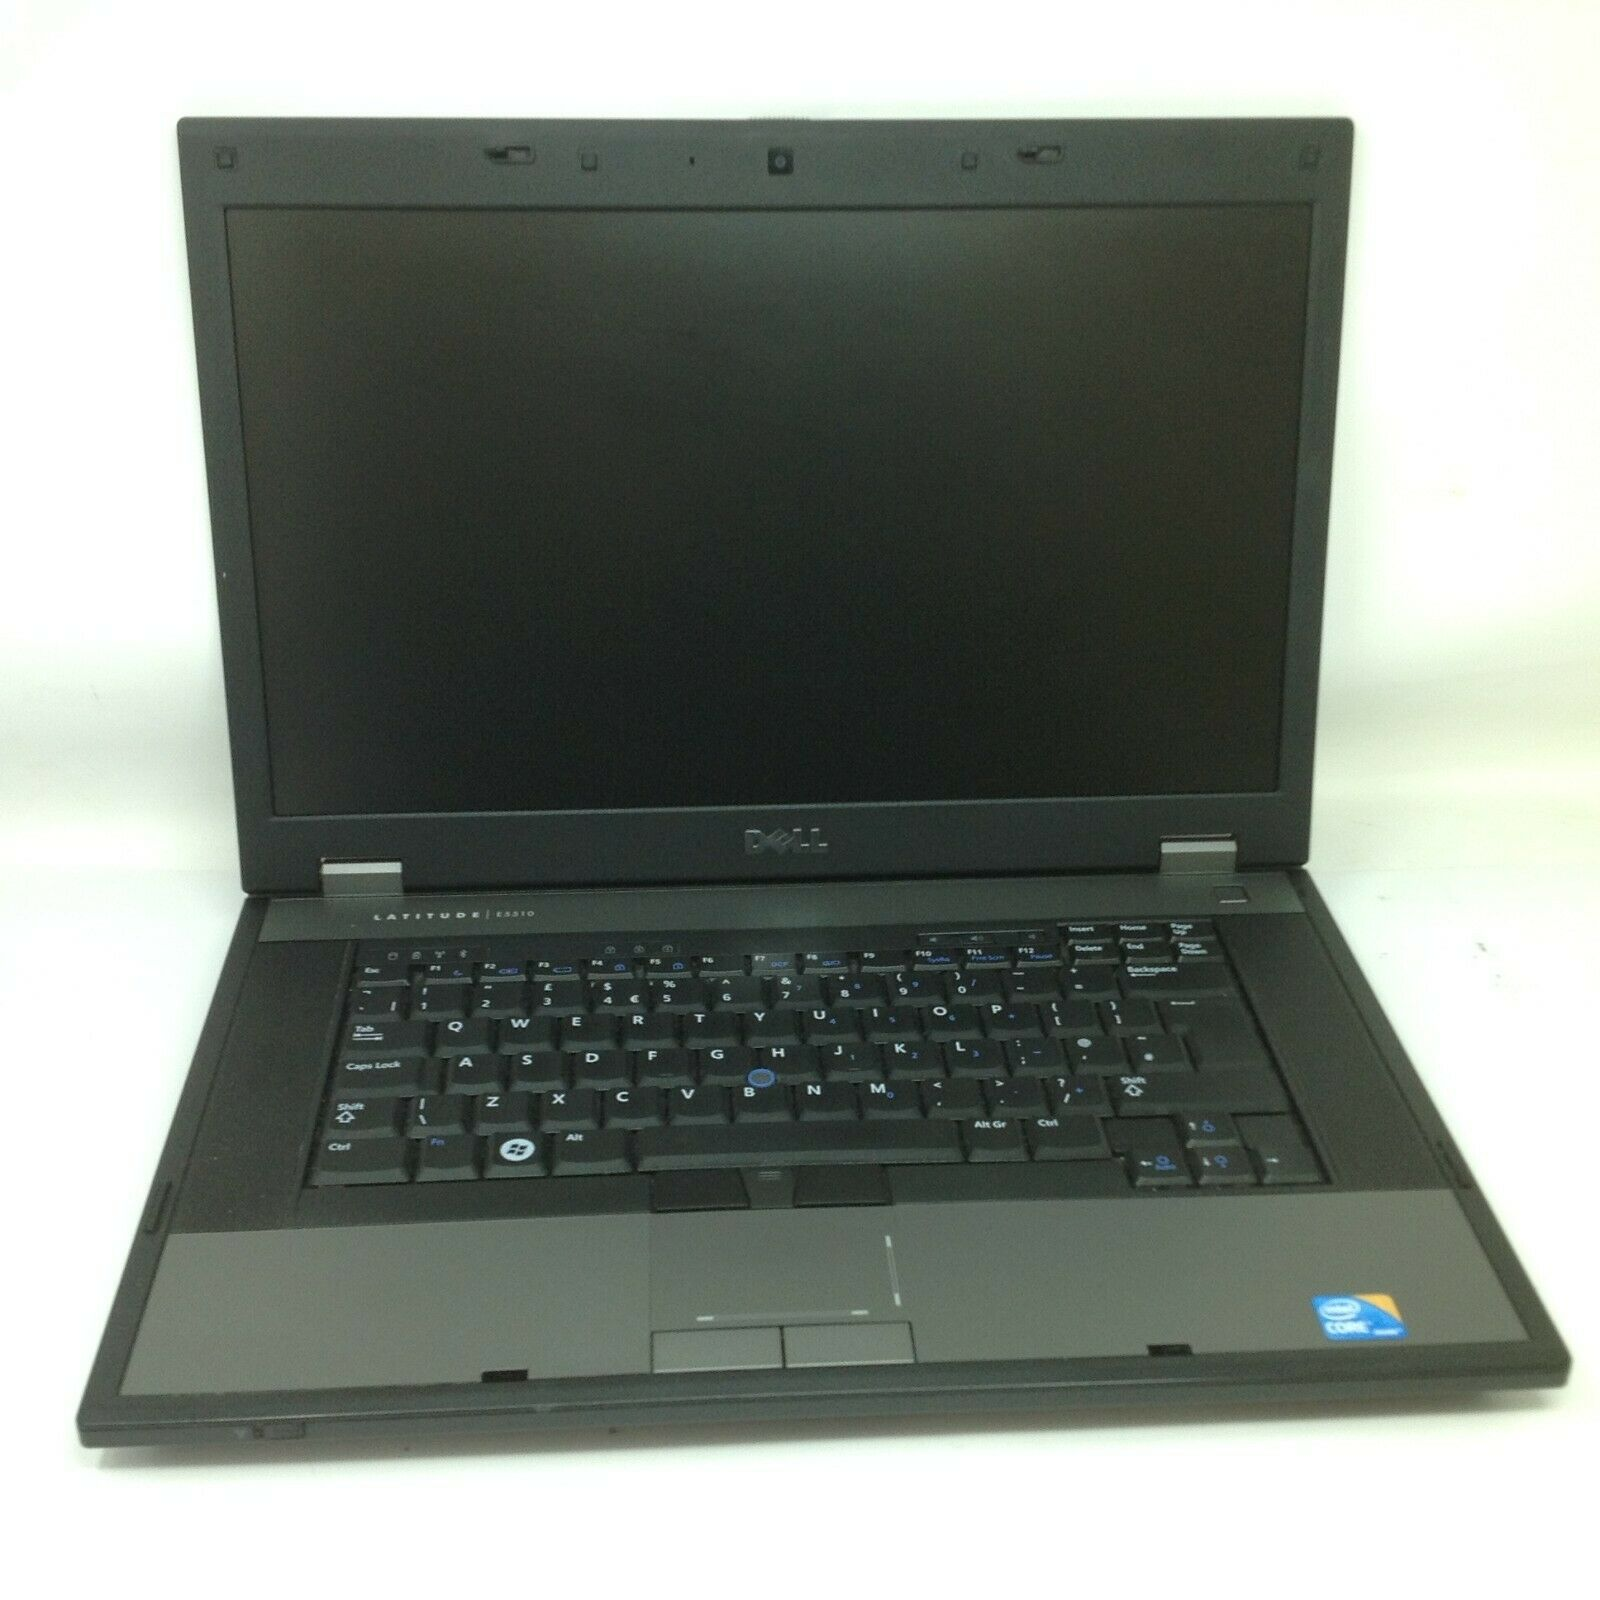 Dell Latitude E5510 15 6 Intel Core I5 8 Gb Ram 500 Gb Hdd Dvd Rw Win 10 Webcam Ebay